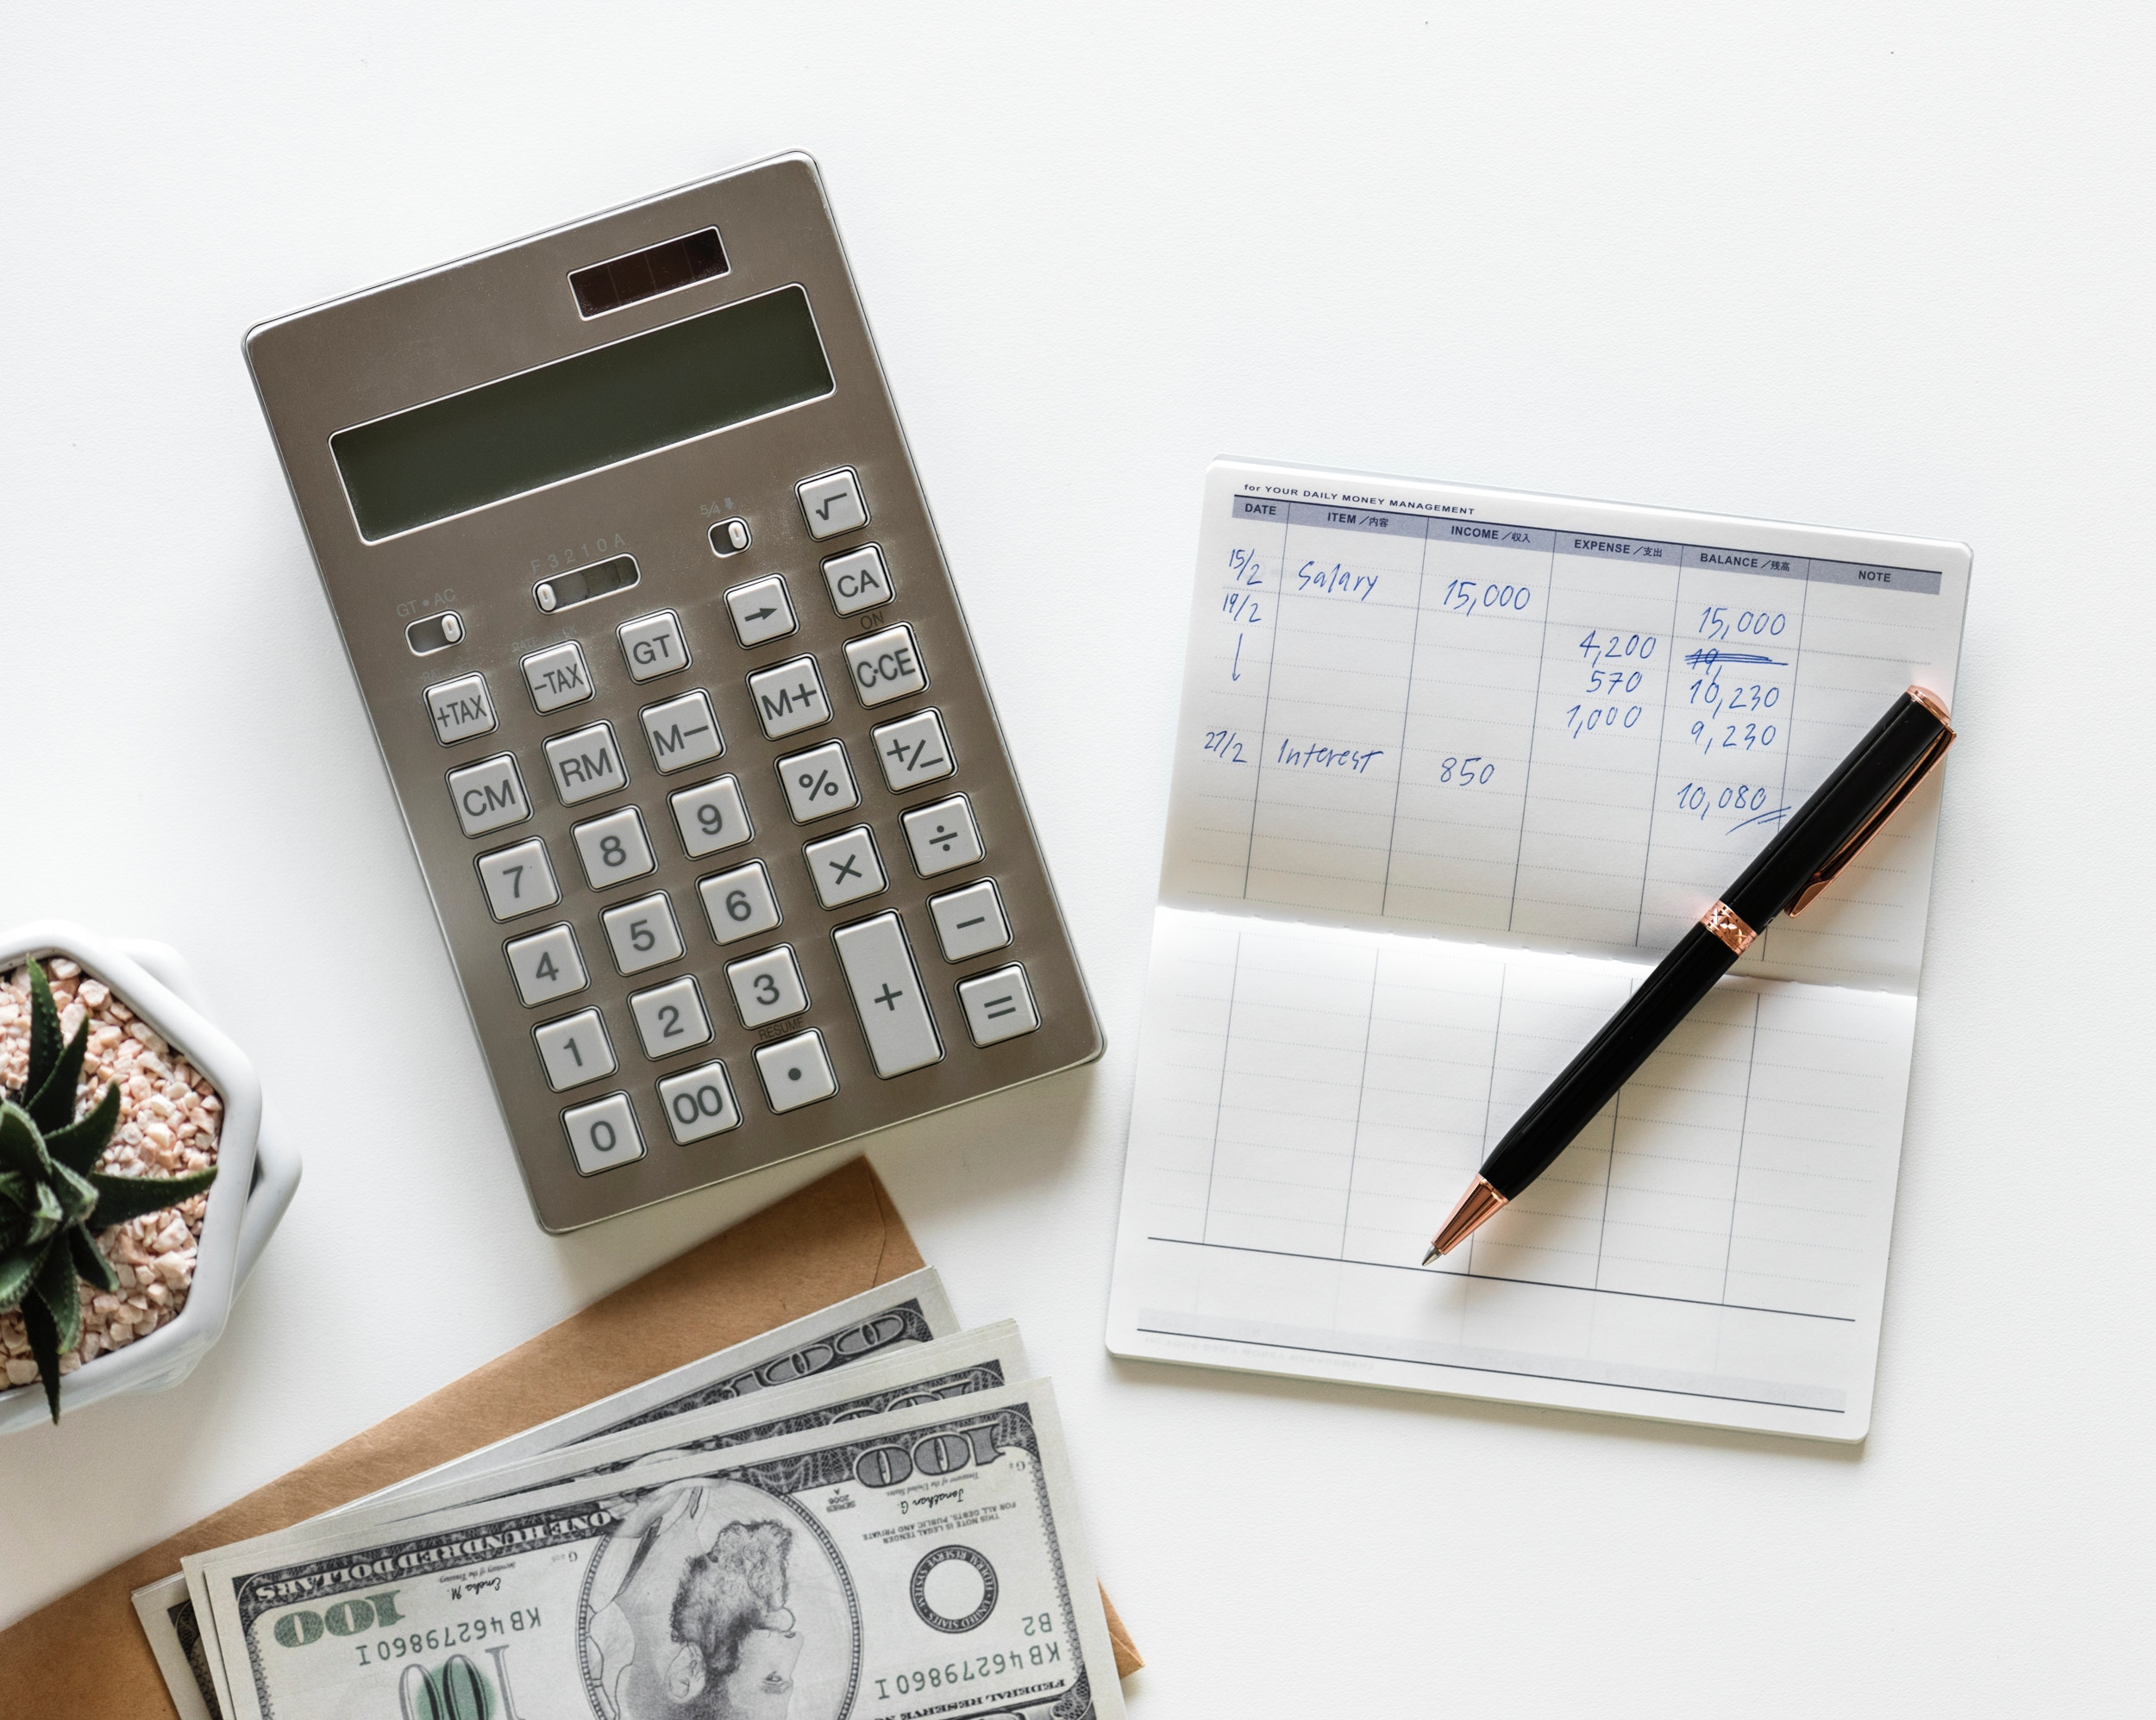 Budgeting - A budget isn't restrictive, a budget is freeing. A budget tells your money where to go.Here are a few tools to get you started and who knows, maybe you'll find money you didn't even know you had.• Click here for a Quick Start Budget.• Click here for a Monthly Cash Flow Plan.